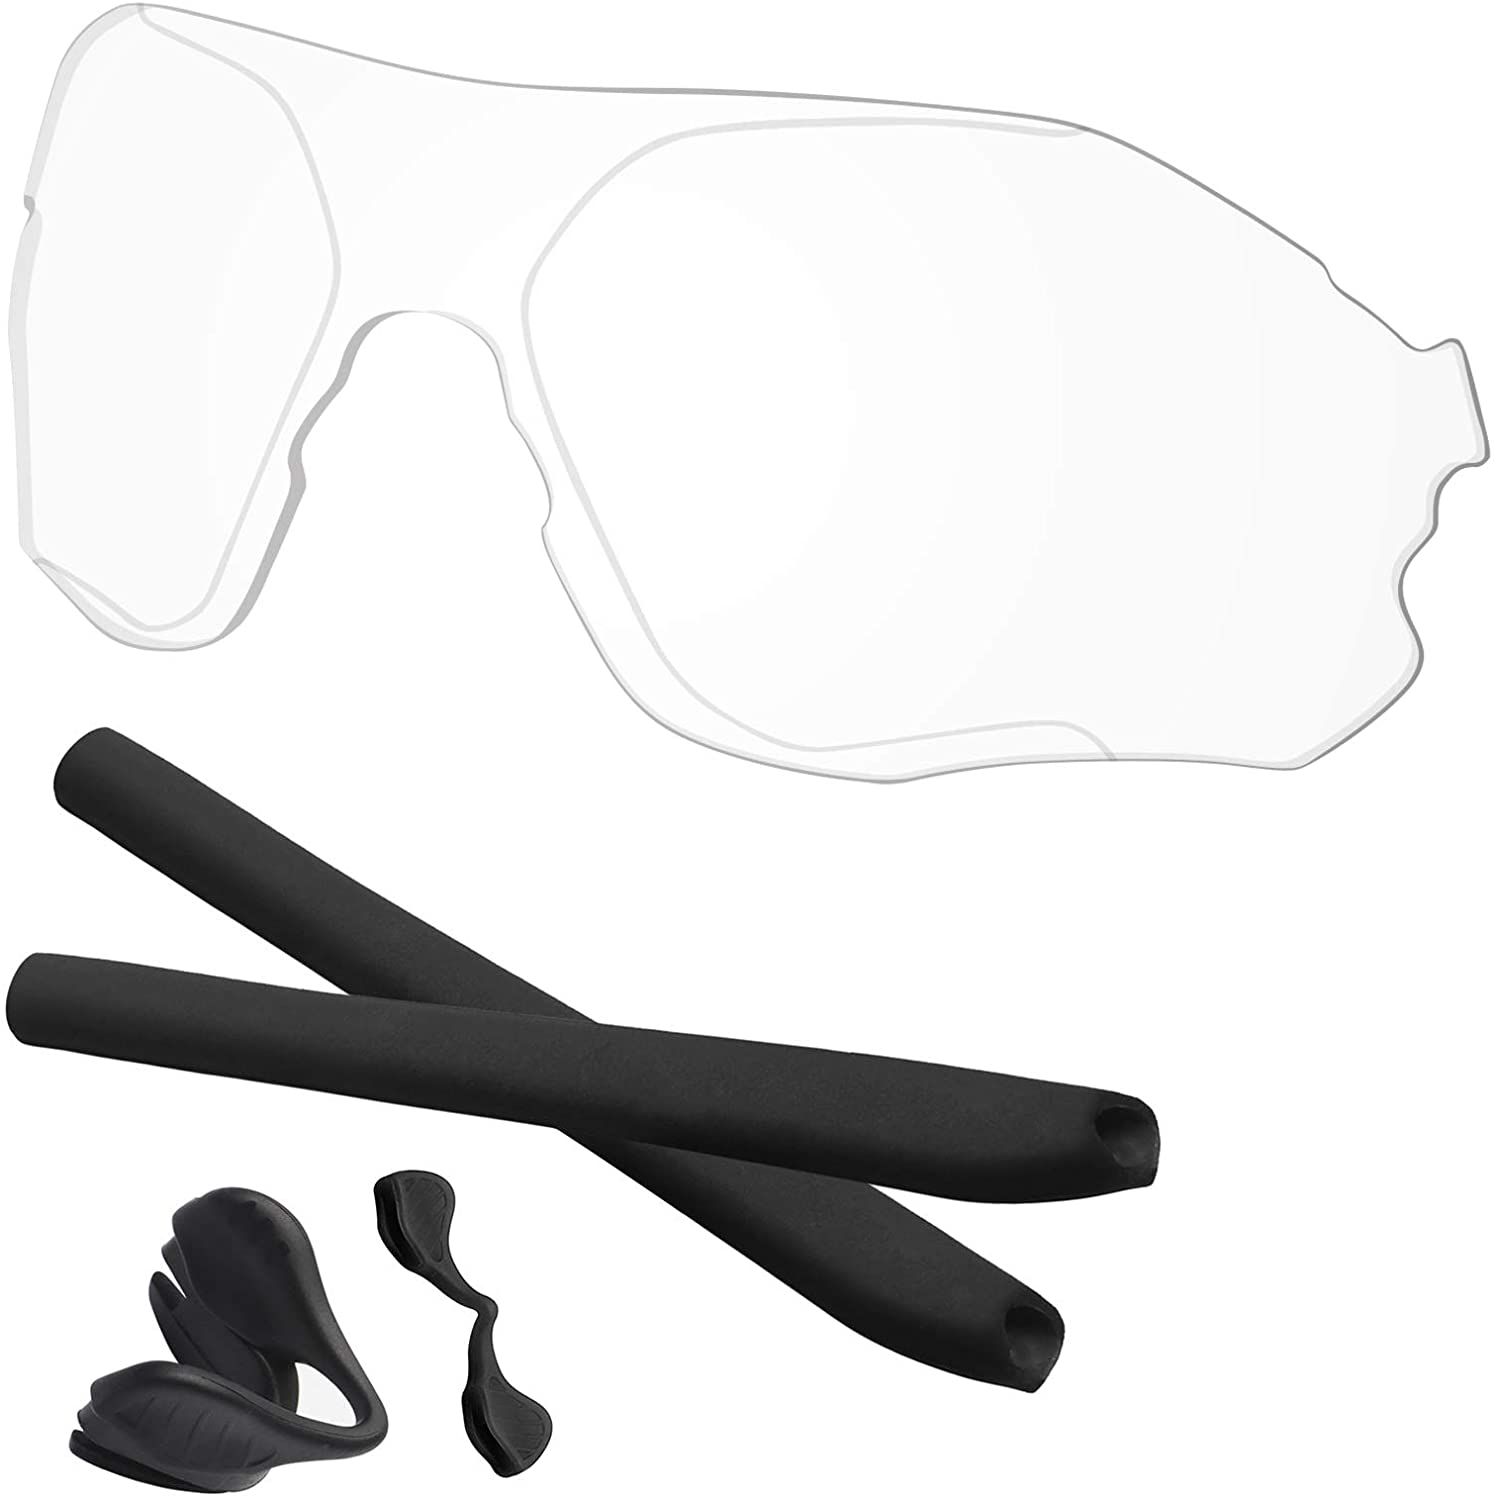 Predrox EVZero Range Lenses & Rubber Kits Replacement for Oakley Polarized OO9327 Sunglass